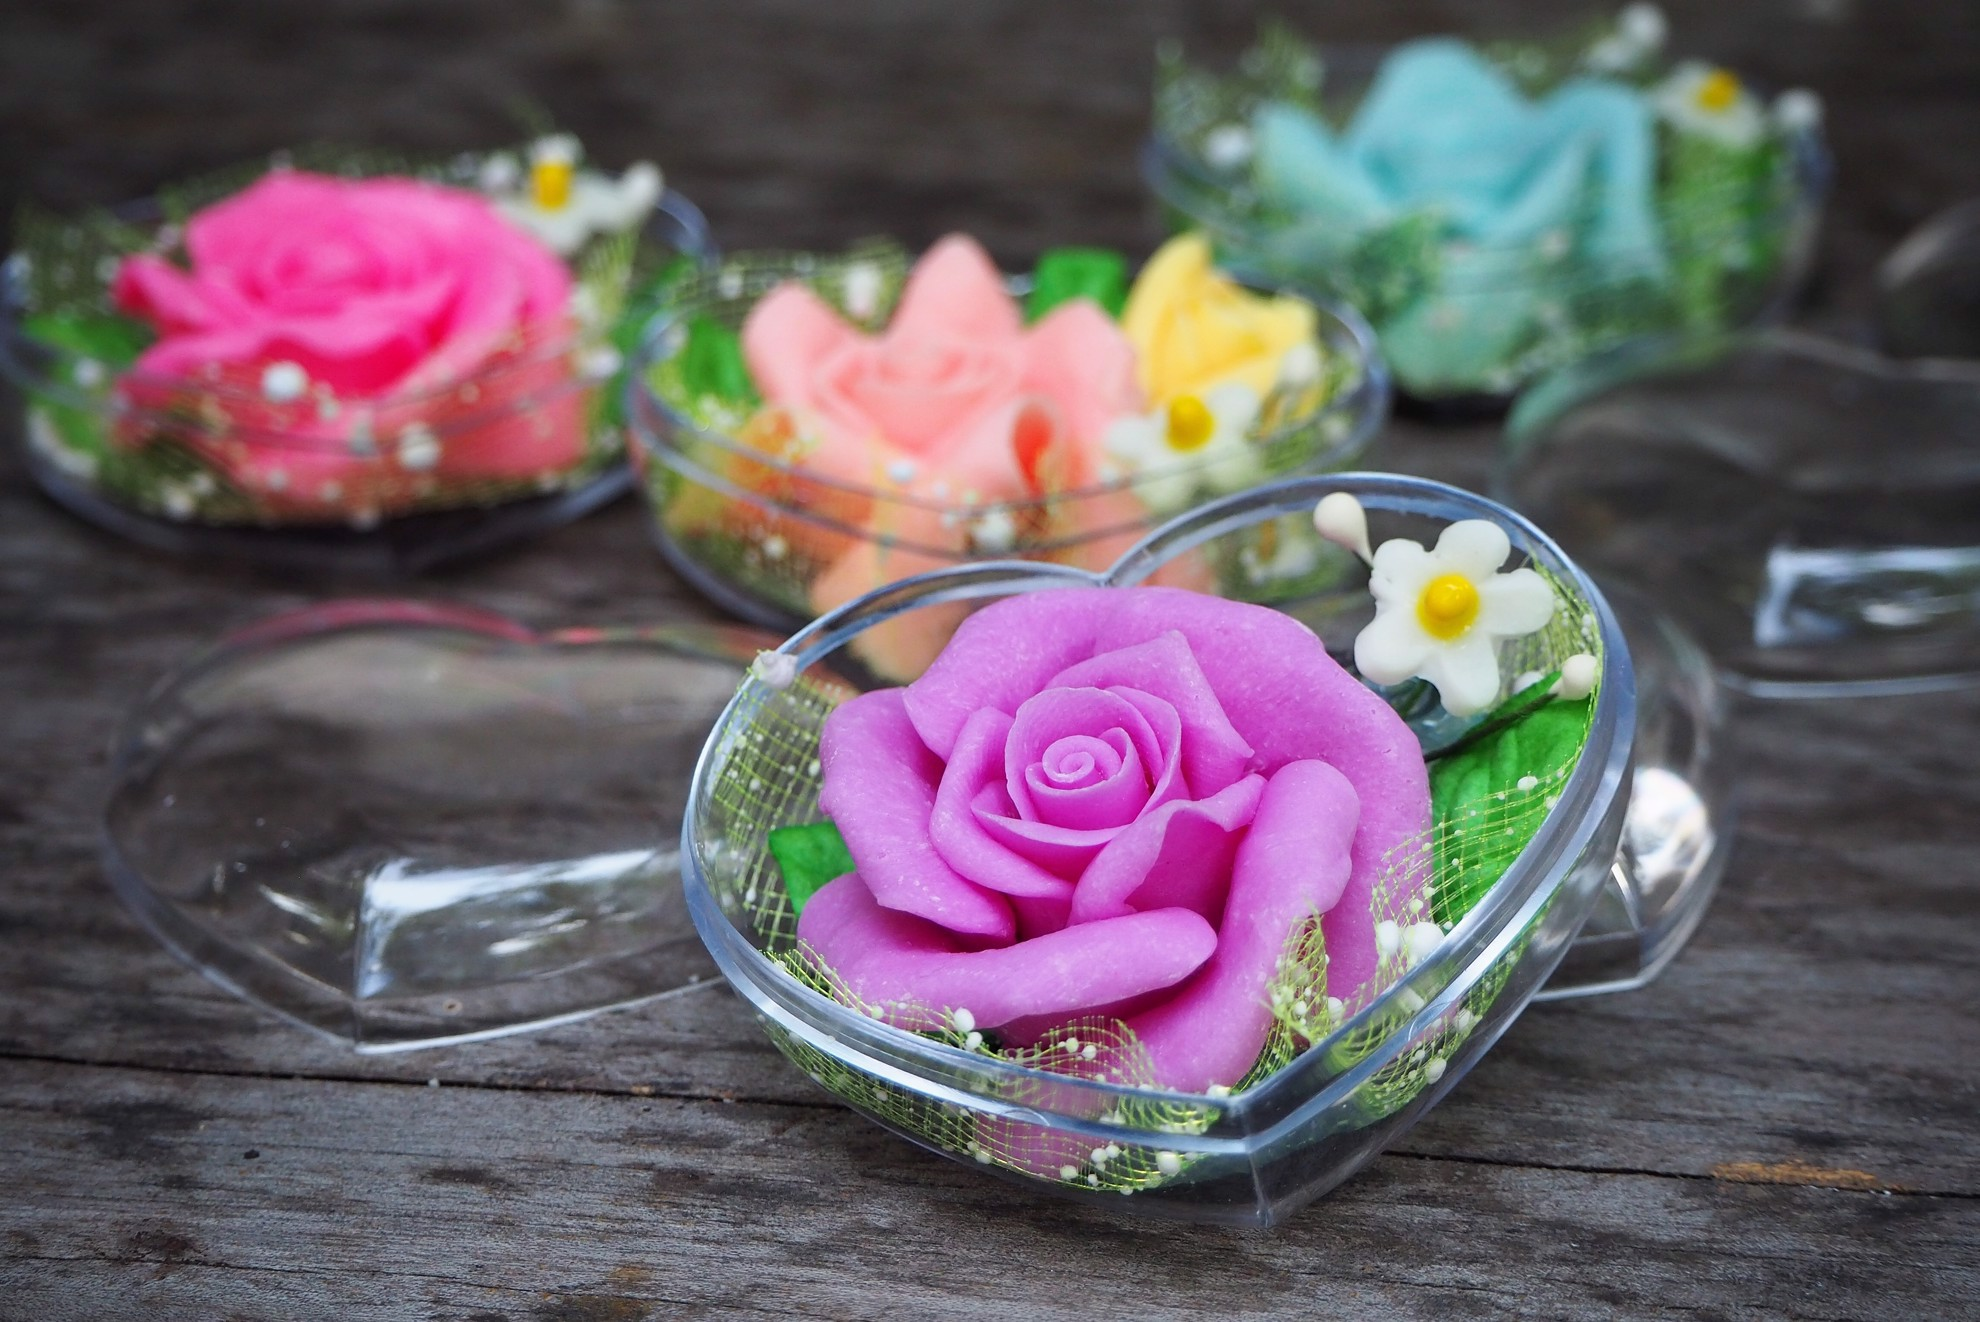 Picture of Rose Decorative Soaps (4) Hand Carved, Rose Aroma Essential Oil, Scented Soap Carving